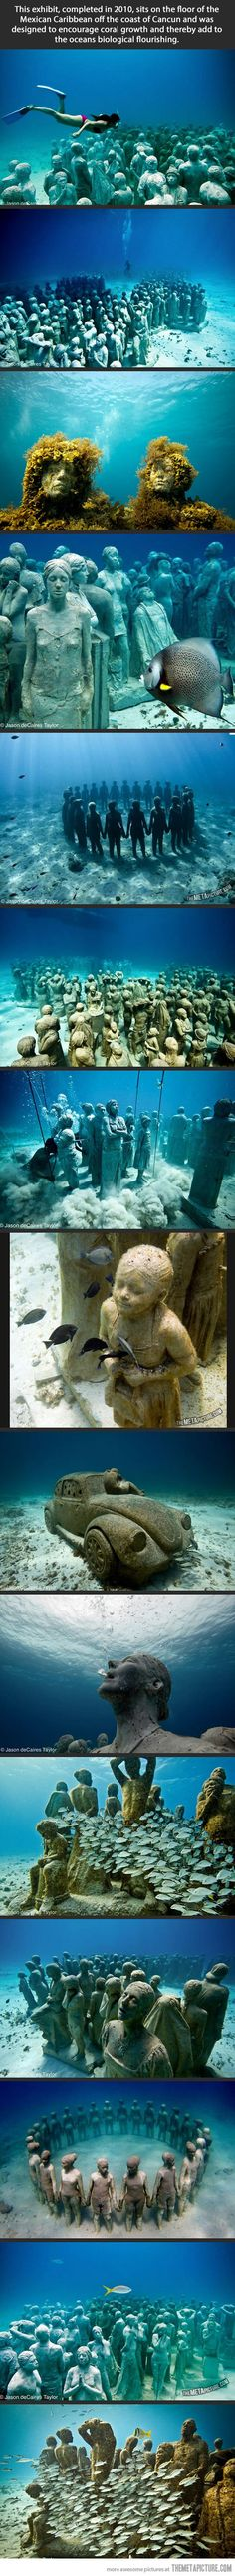 Amazing underwater museum…the unstoppable expression of the heart in art.